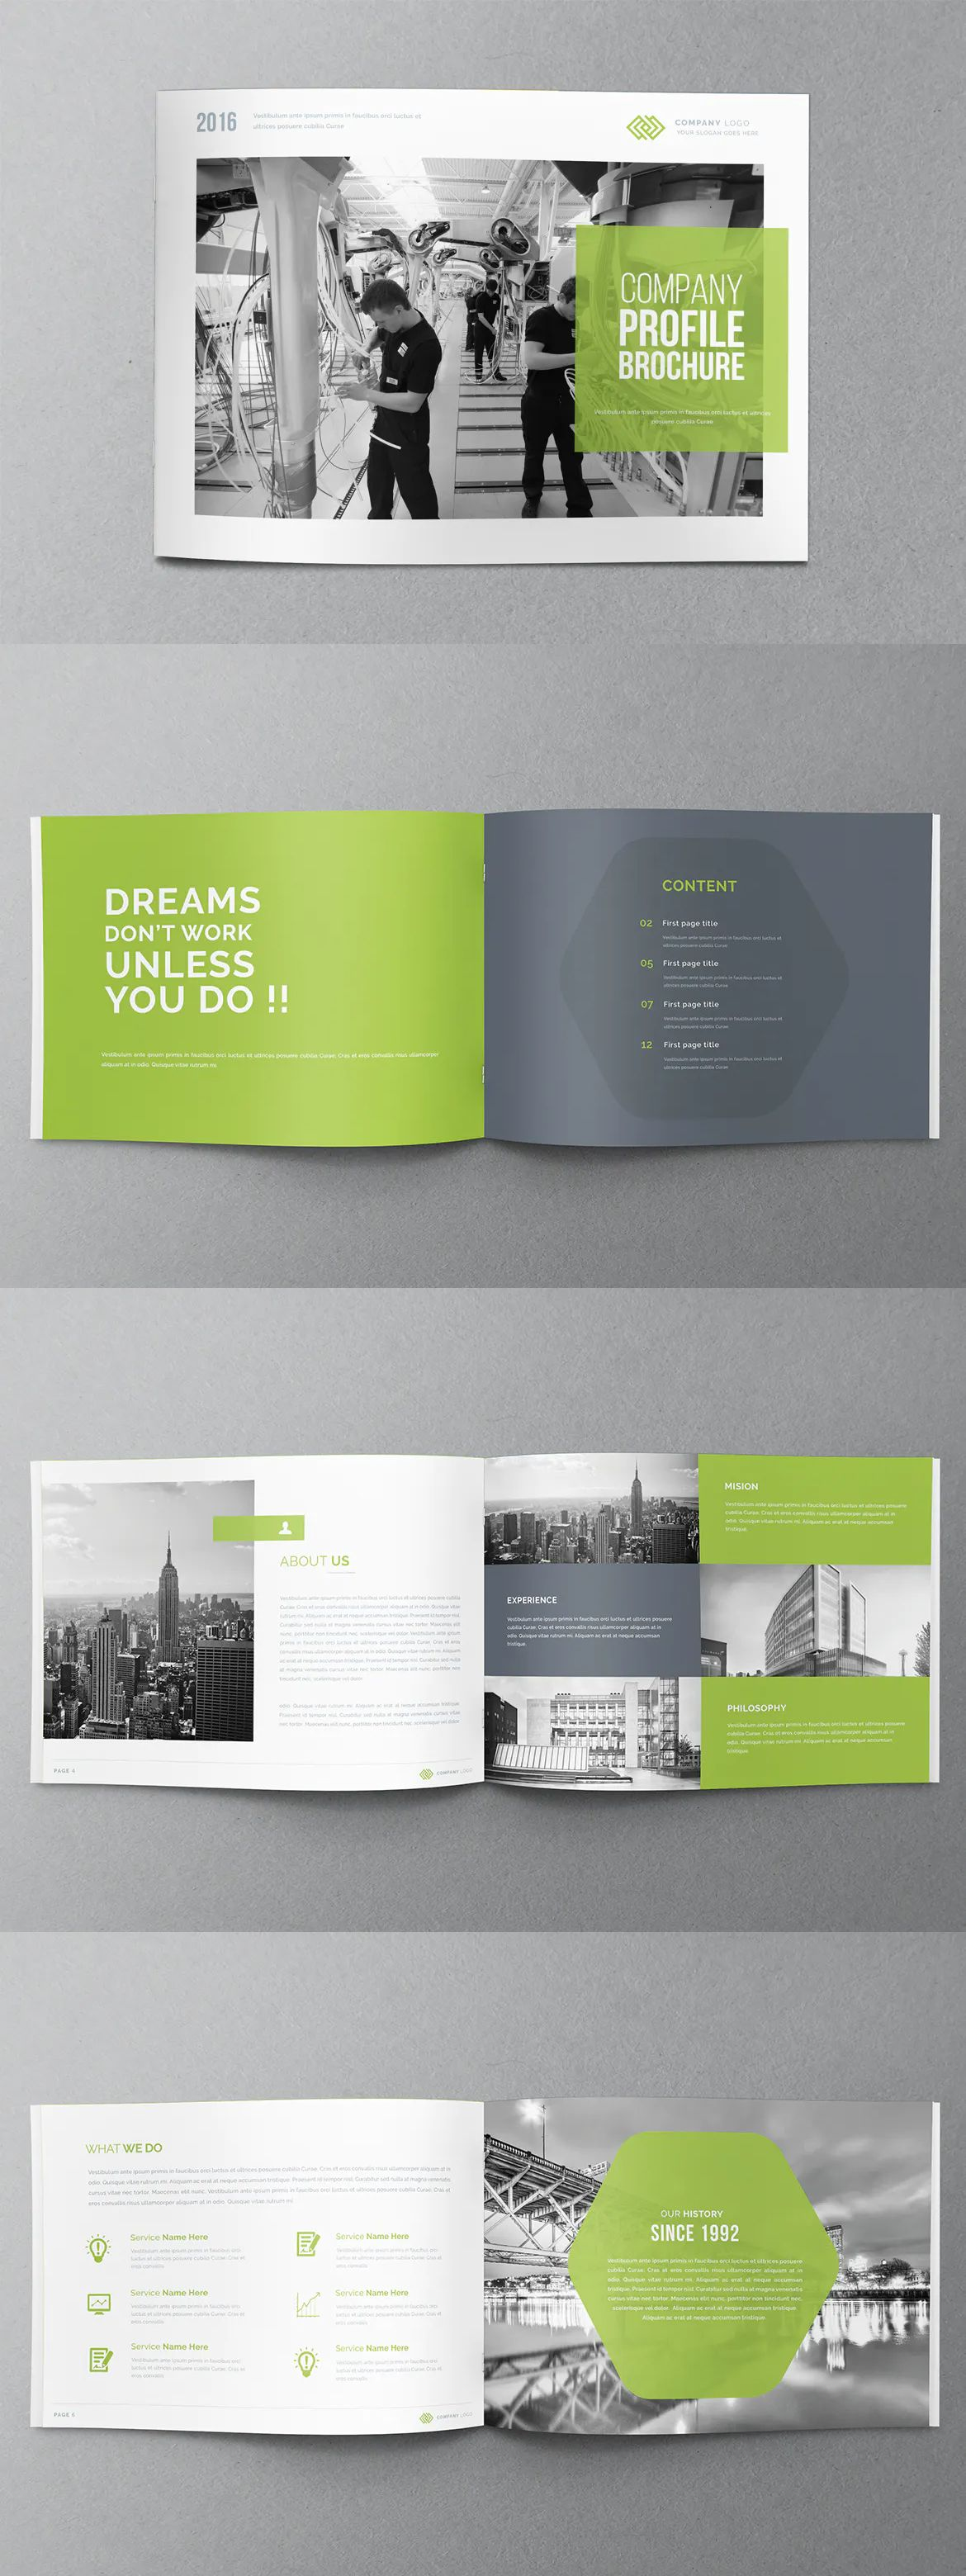 Annual Report Brochure Template InDesign INDD #annualreports